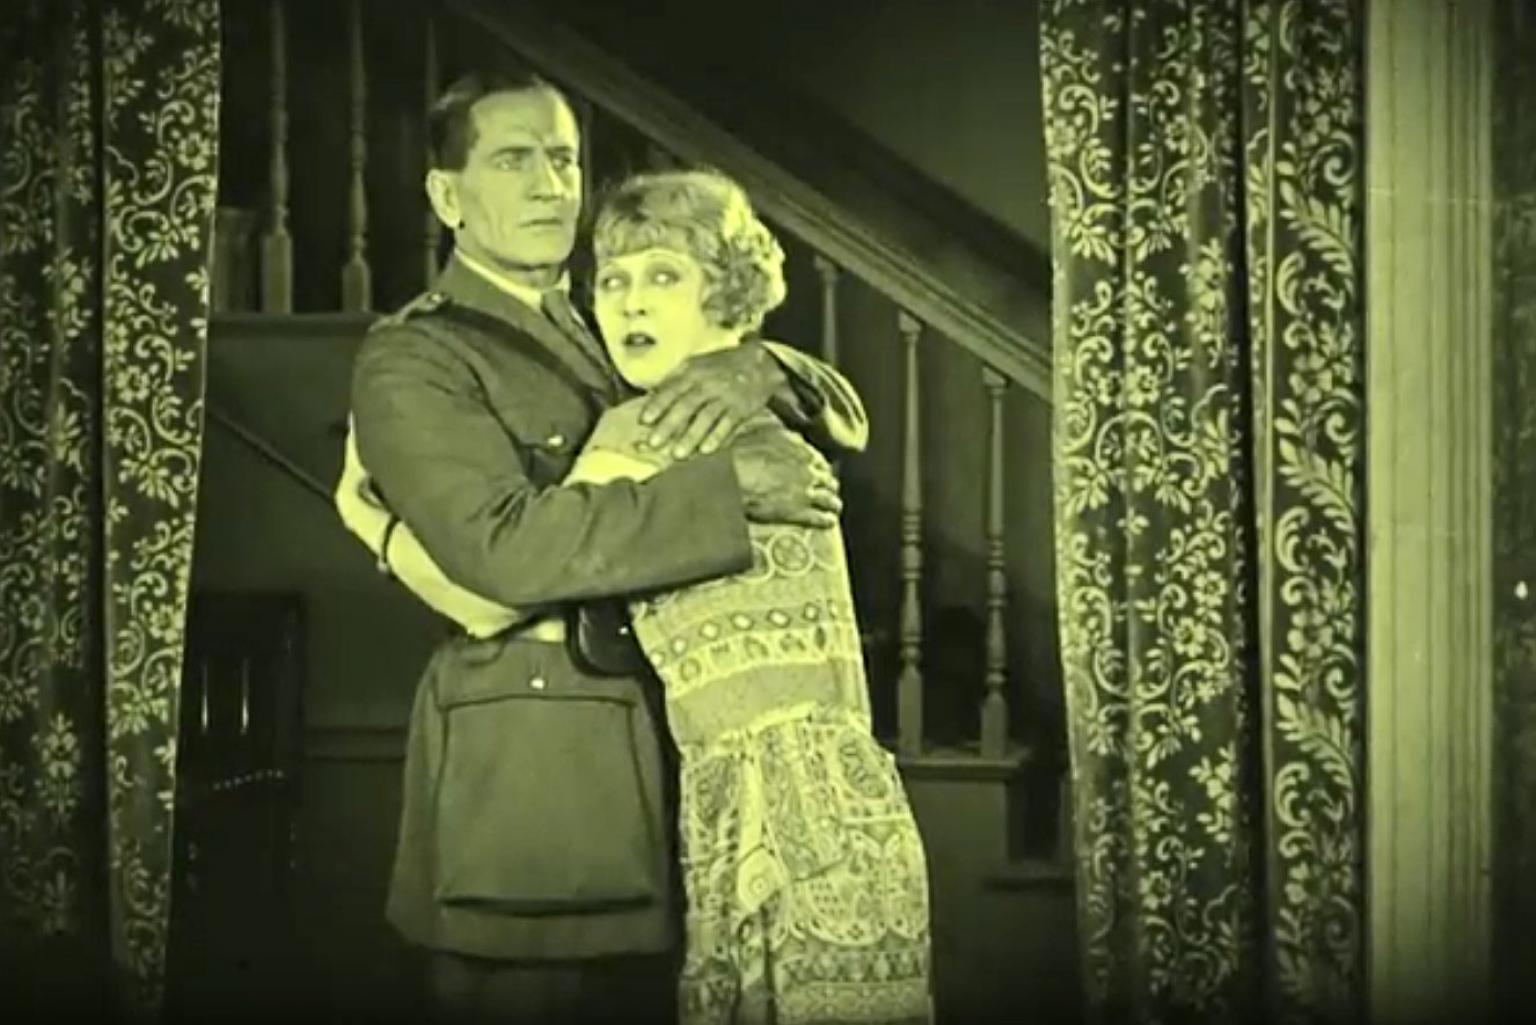 A couple embrace in front of a staircase with curtains on either side. They both have concerned looks on their faces. The image is from a scene in the silent era film Empire Builders (1924).